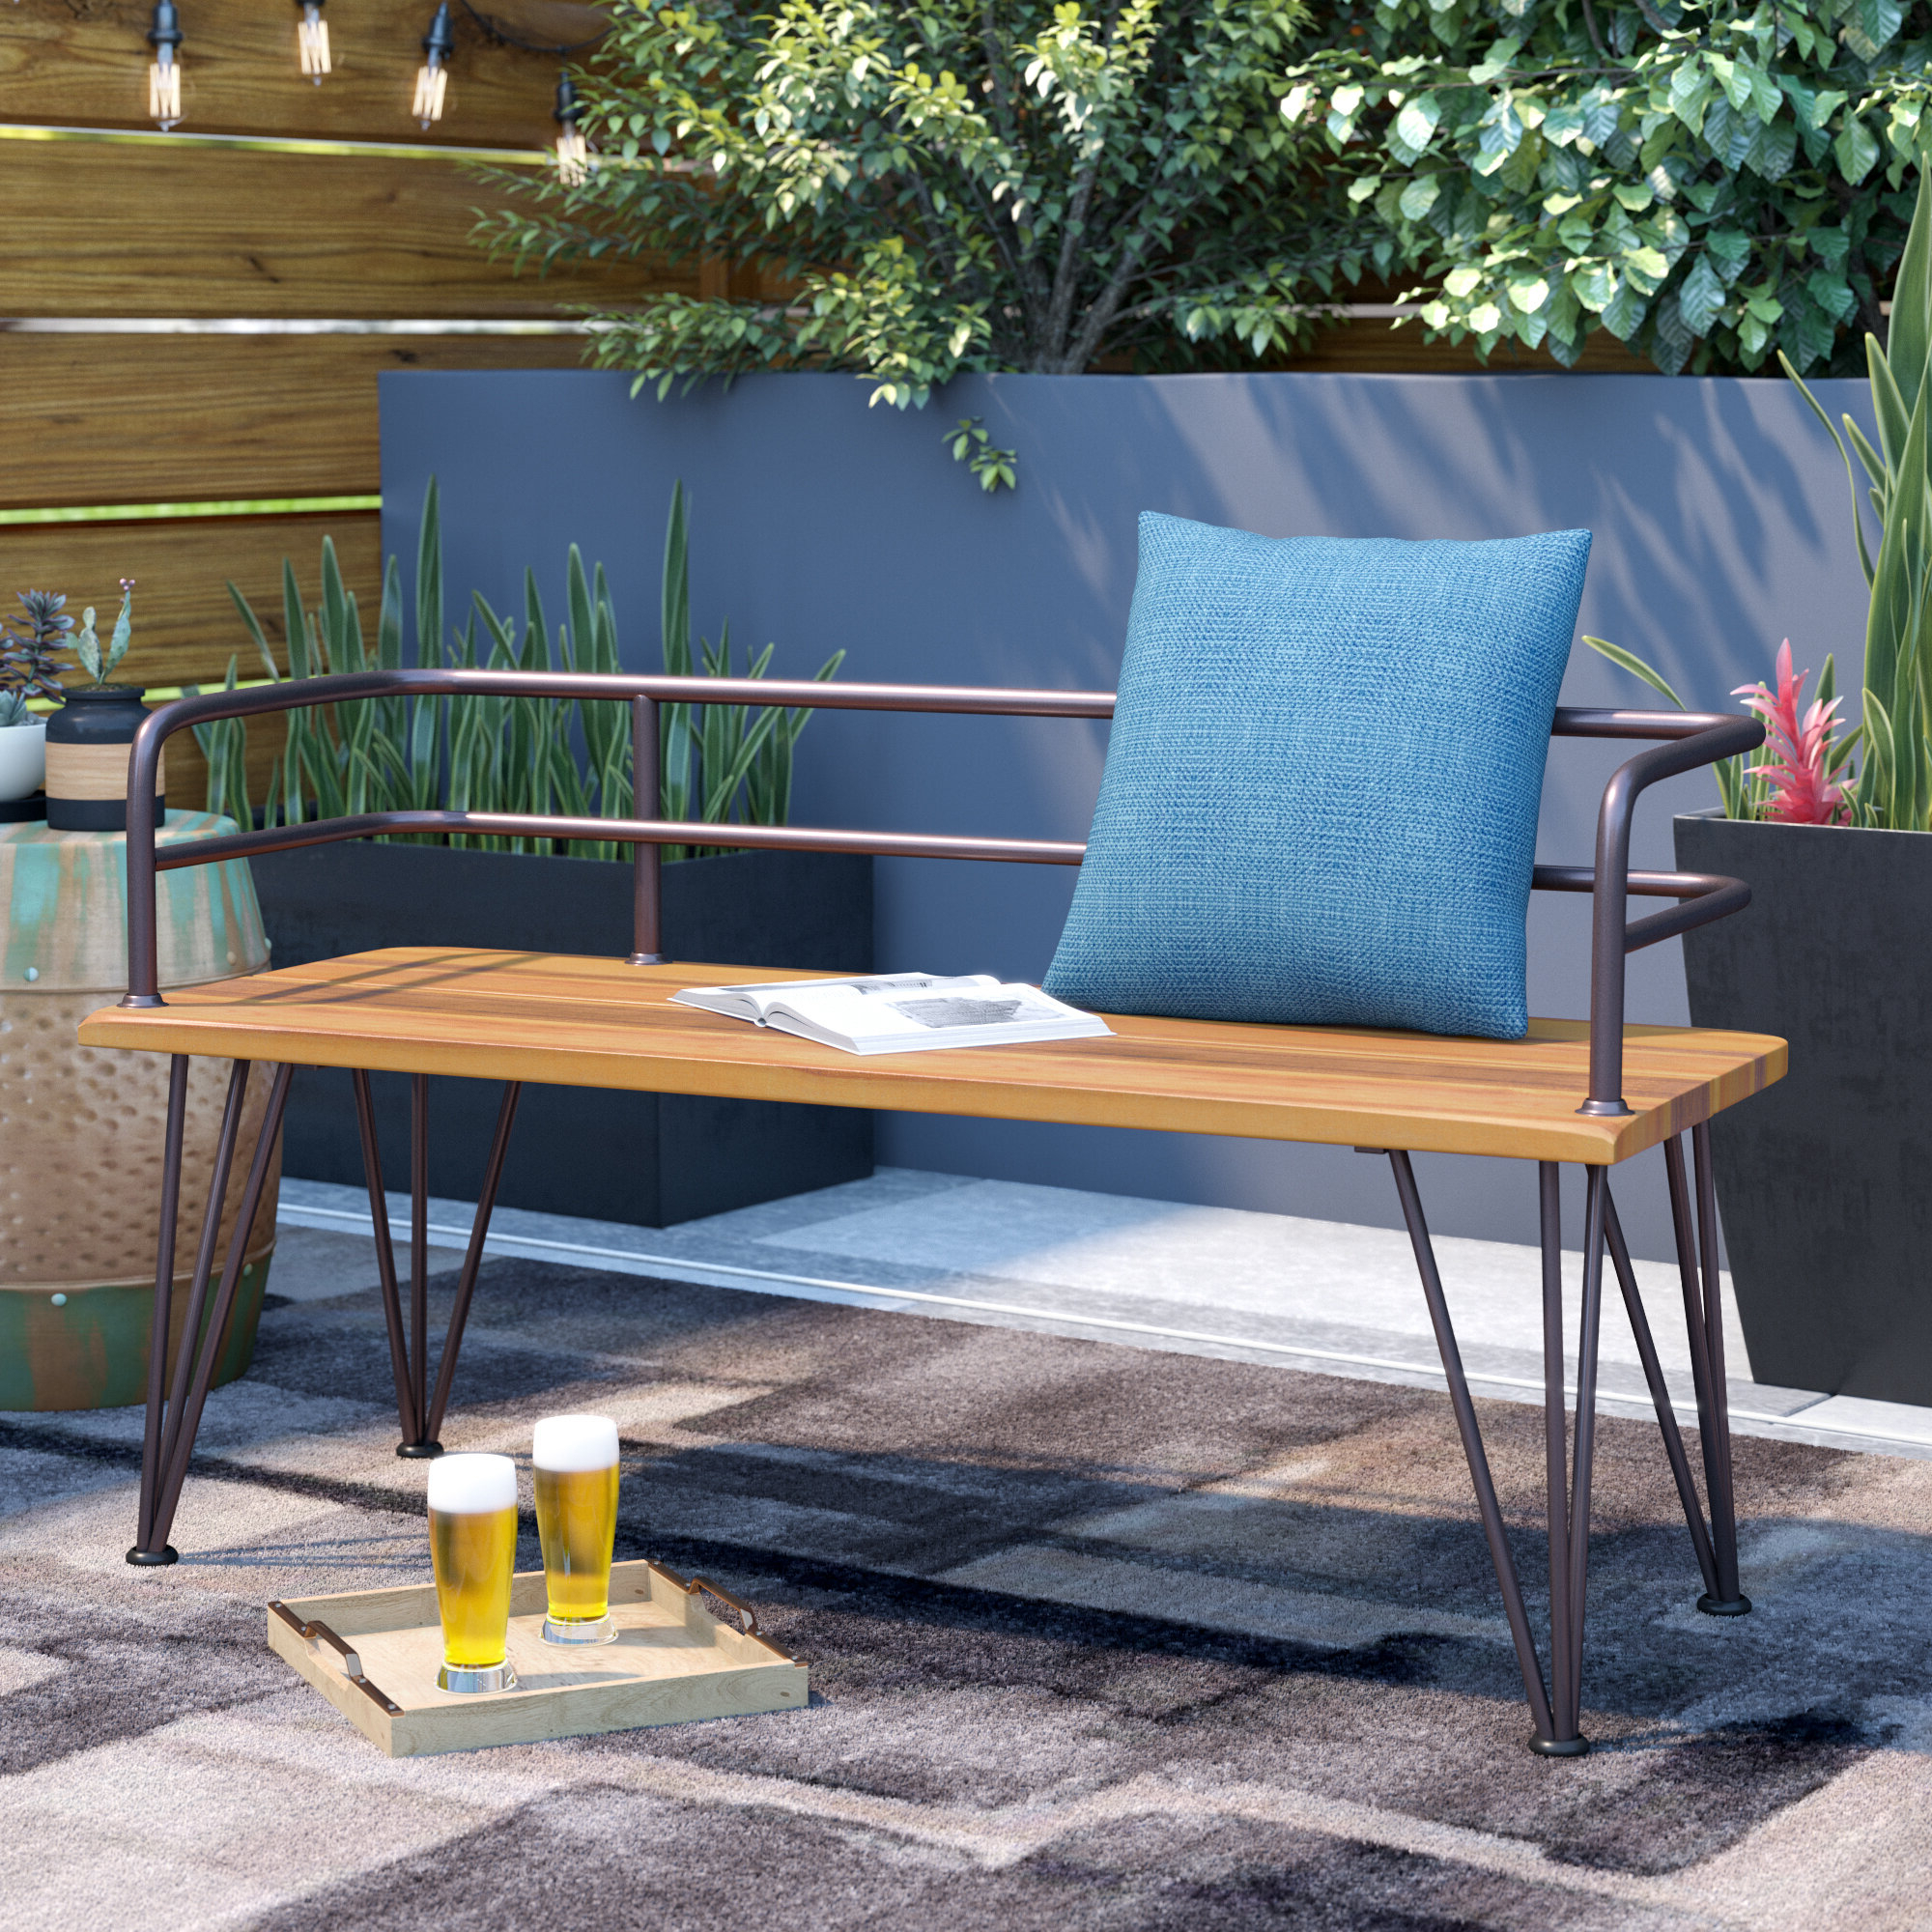 Krystal Ergonomic Metal Garden Benches Throughout Well Known With Arms Outdoor Benches You'll Love In  (View 9 of 30)